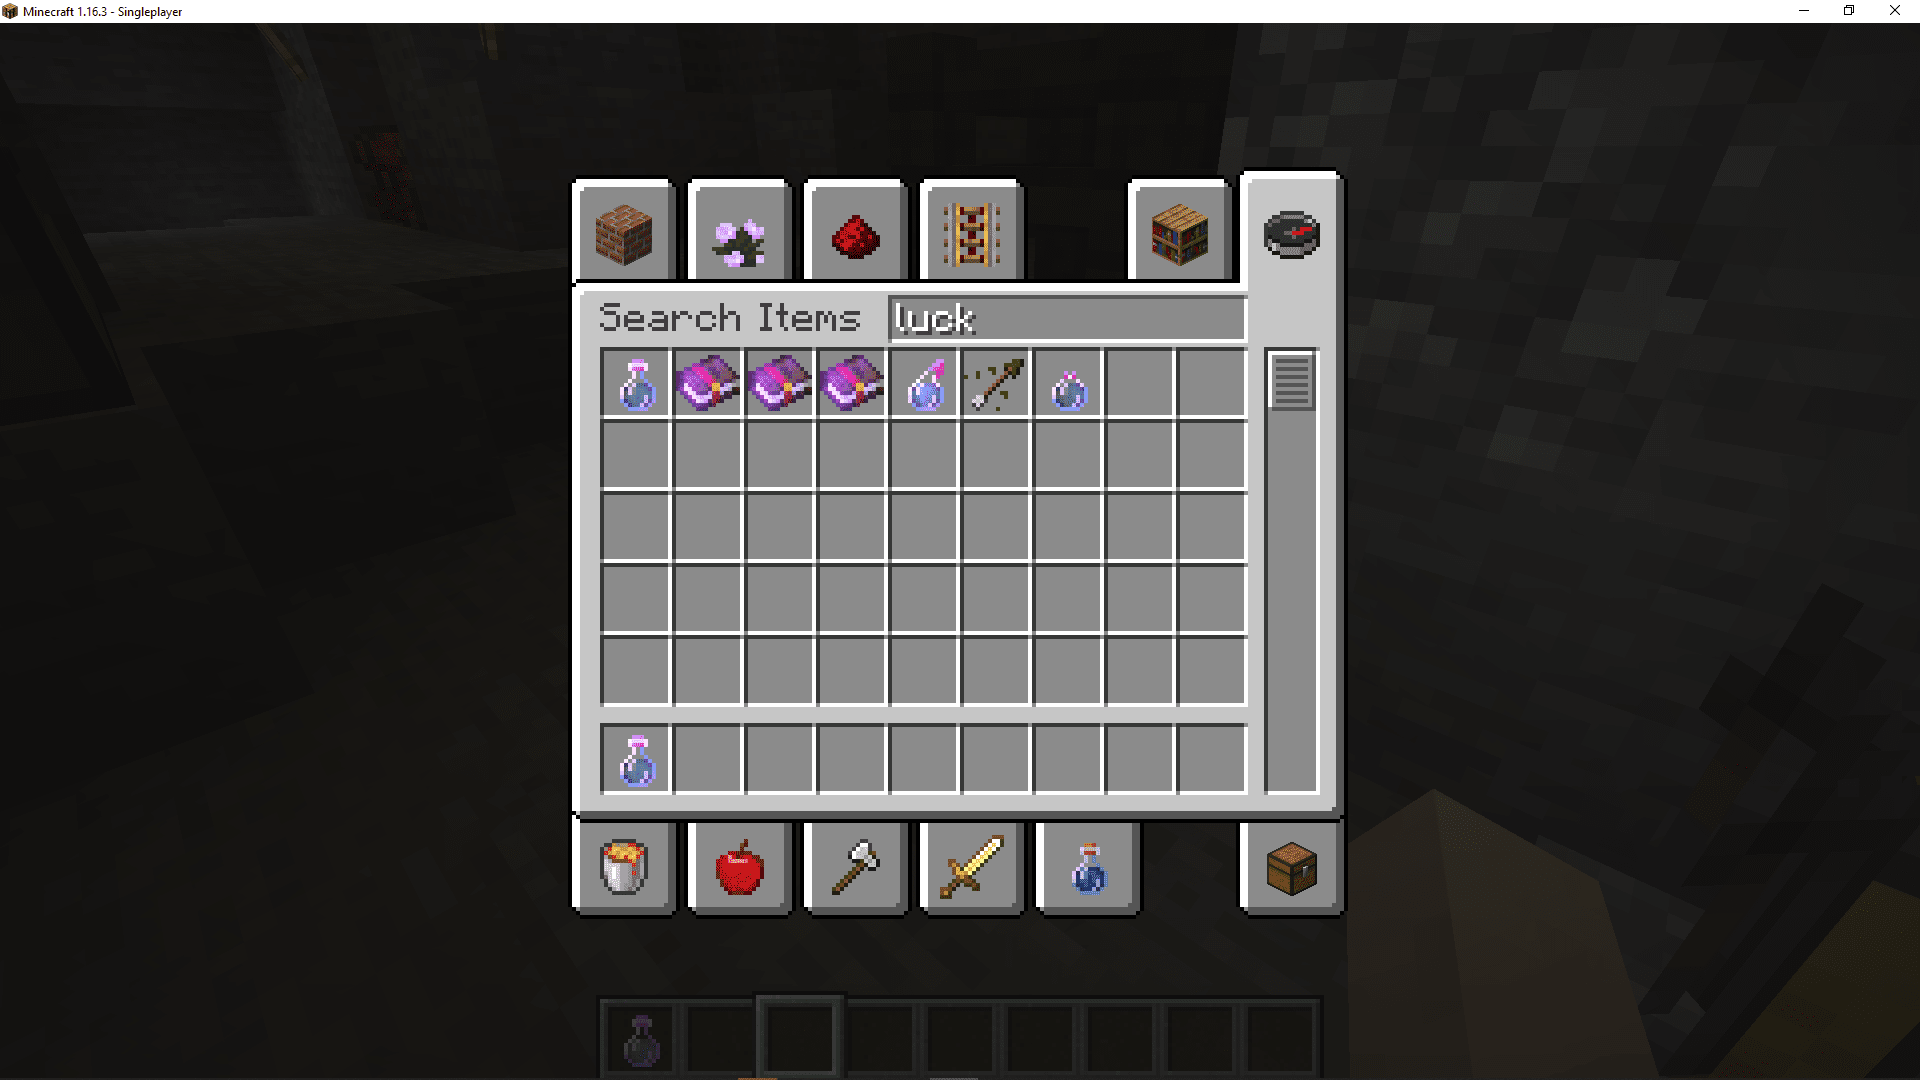 A search result for luck potion in Minecraft.